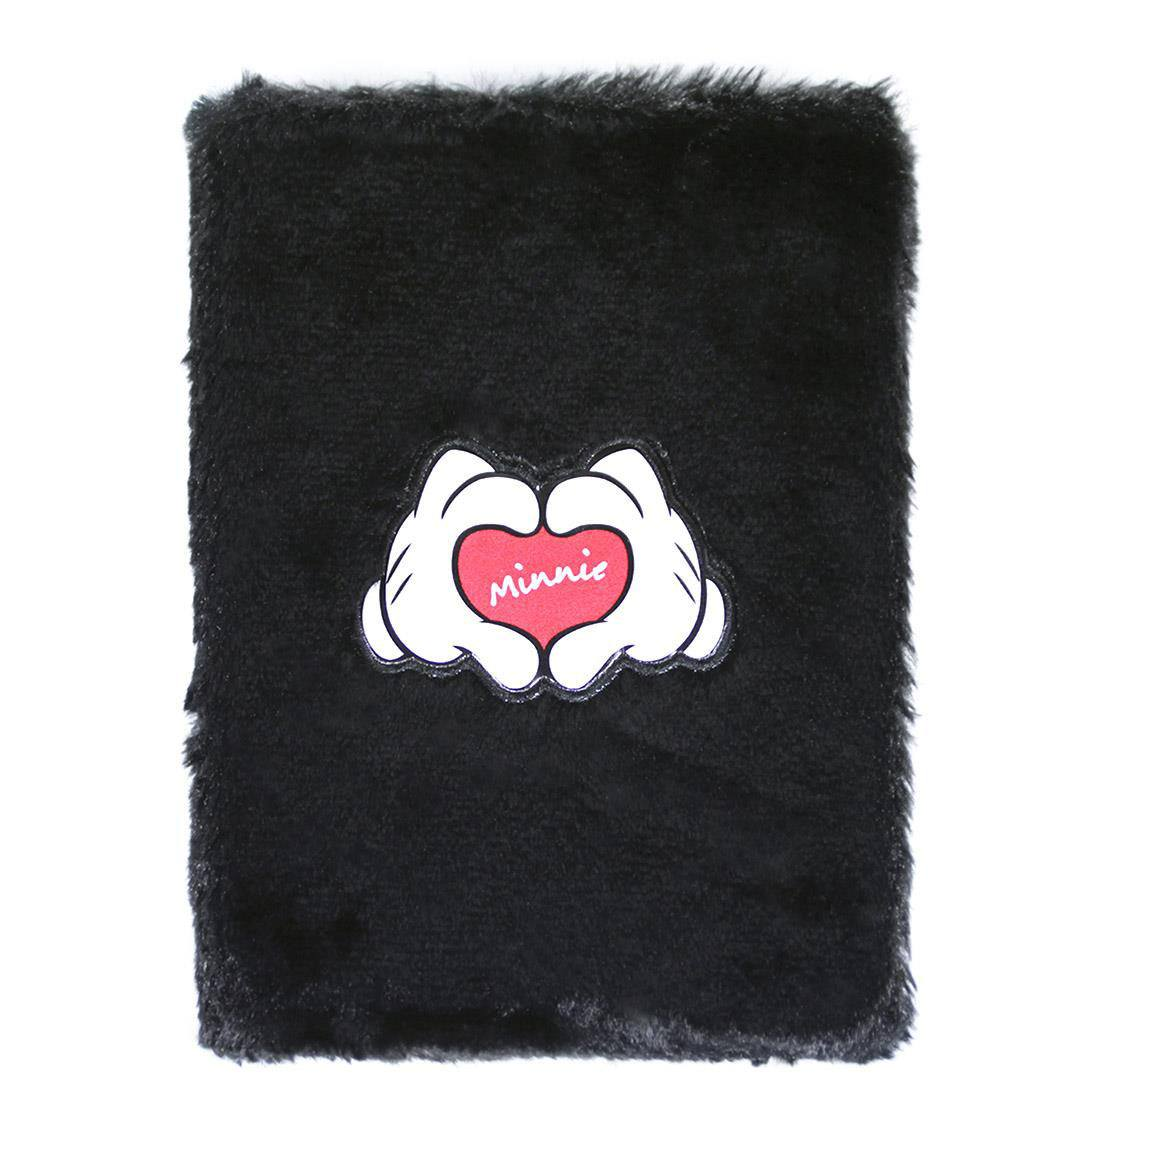 Disney carnet de notes peluche Premium A5 Minnie